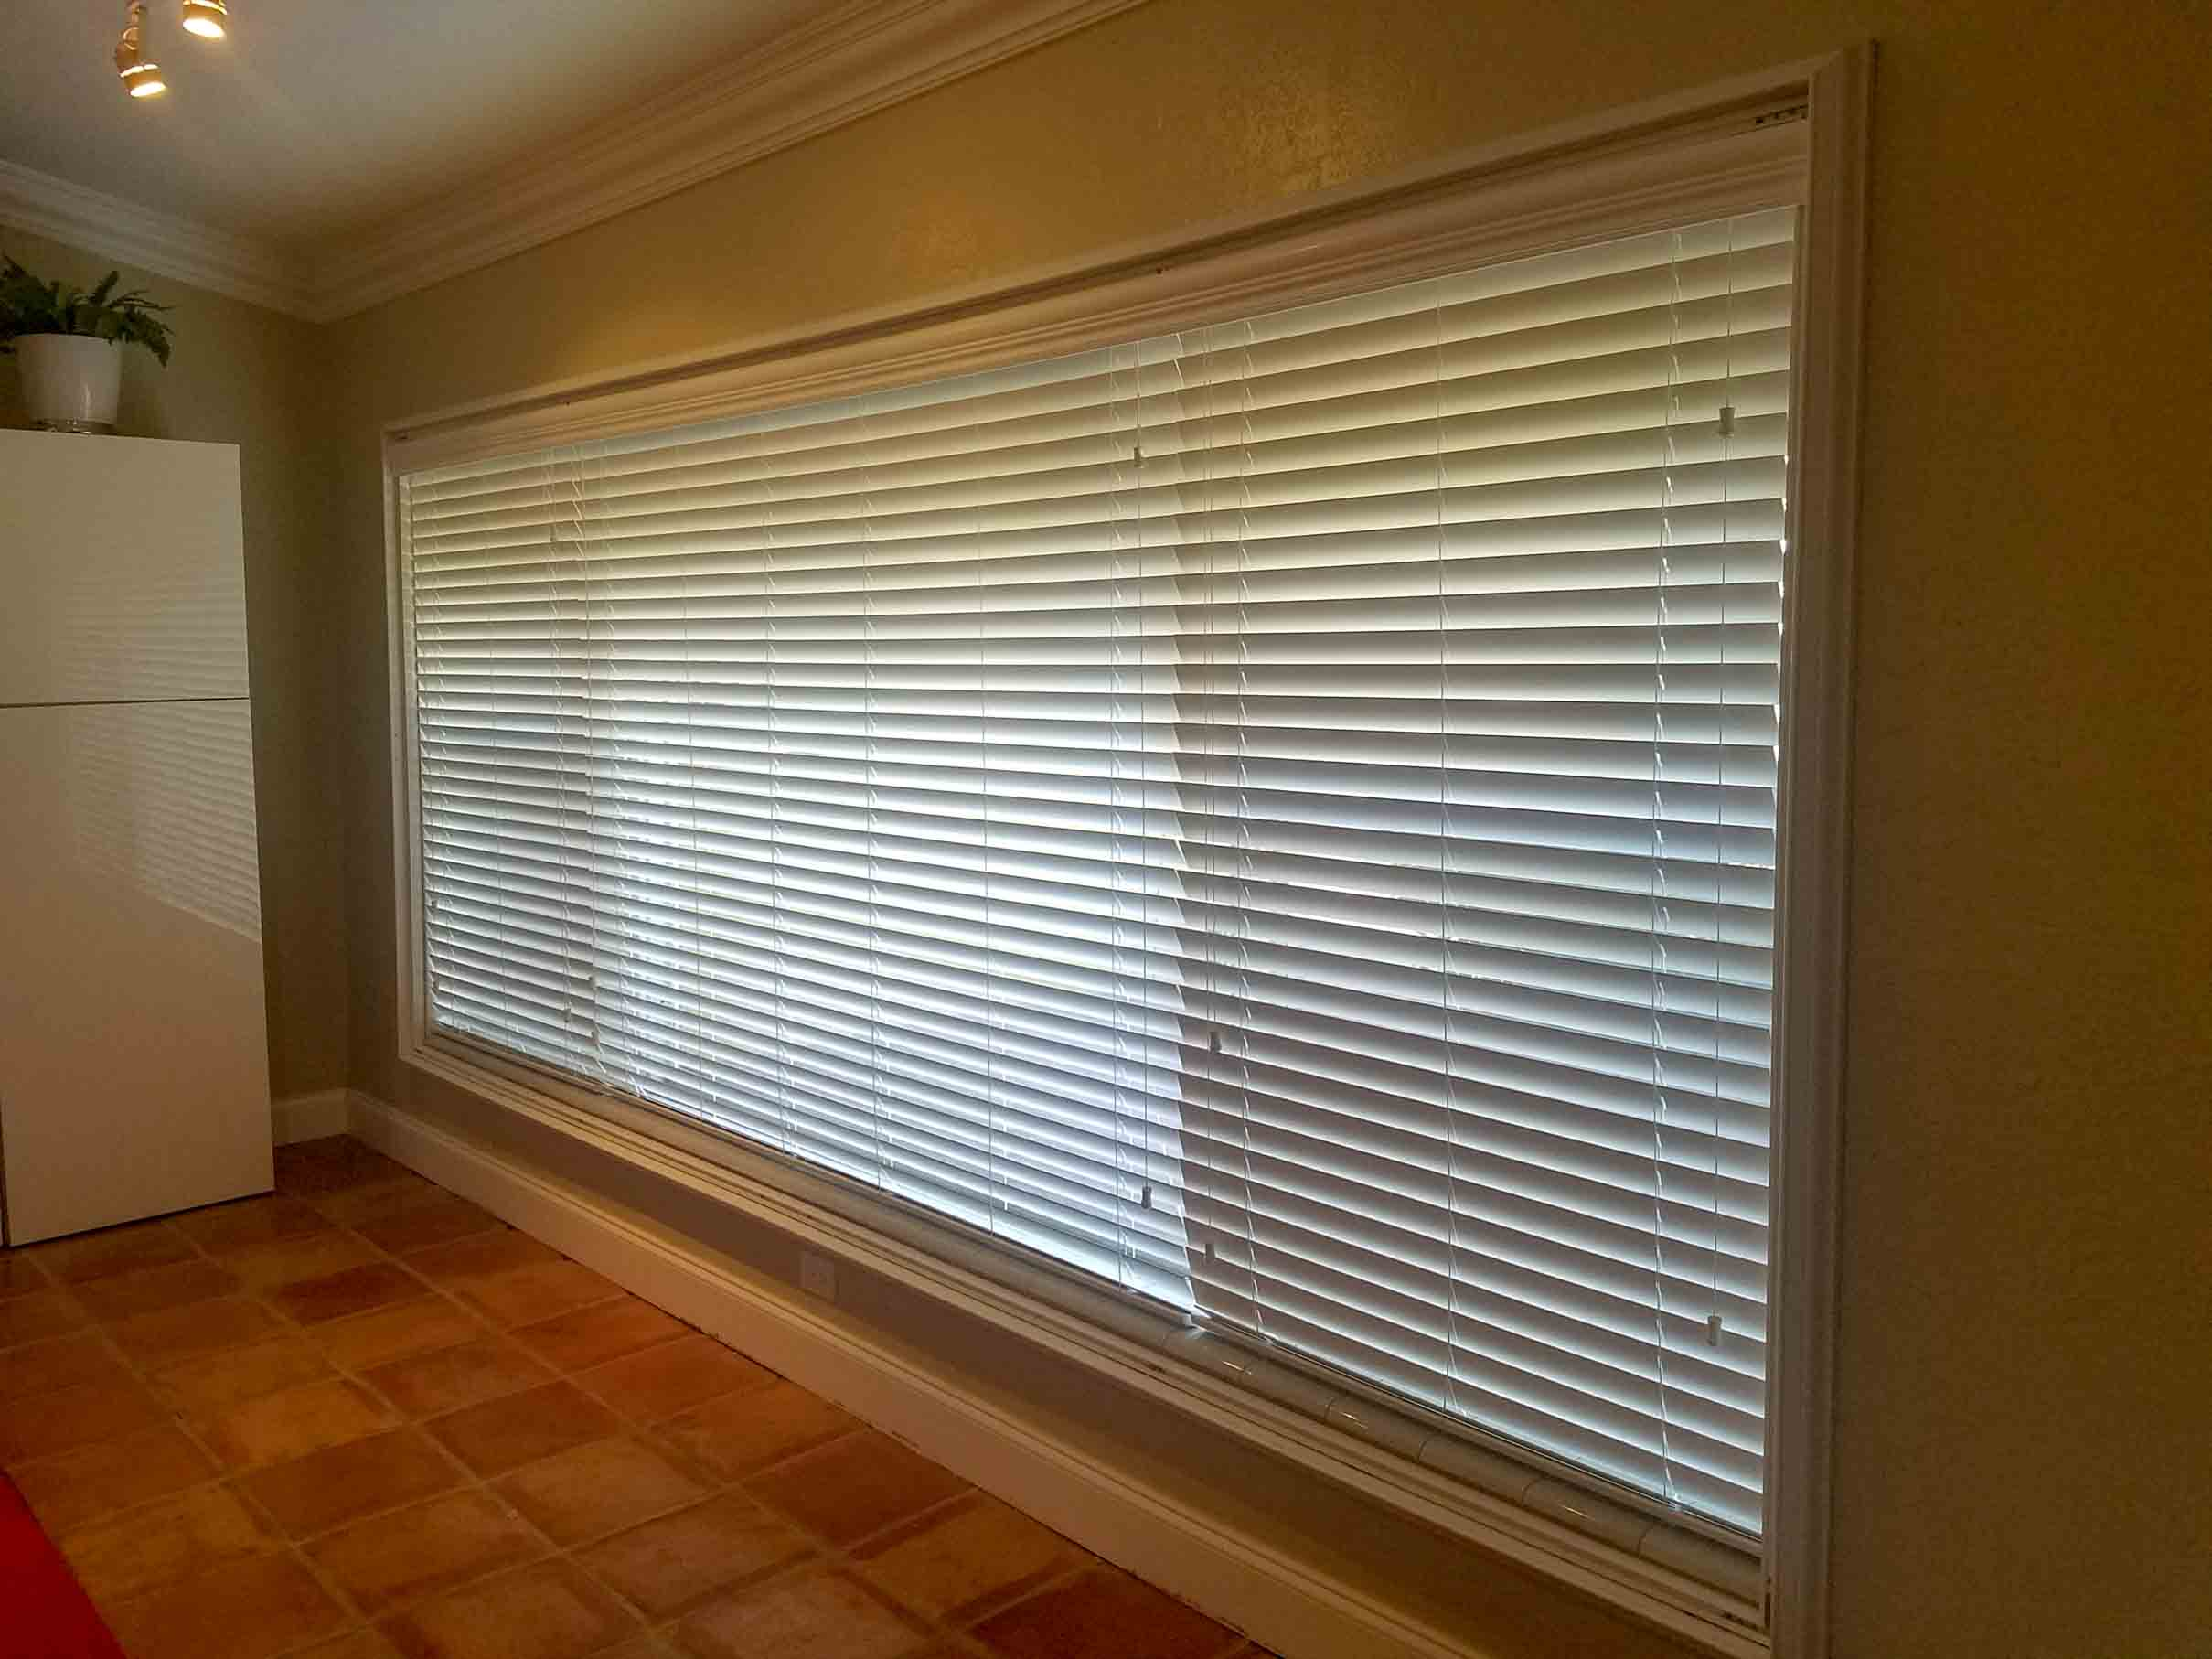 wood blinds gallery WOOD BLINDS GALLERY 20180308 165508